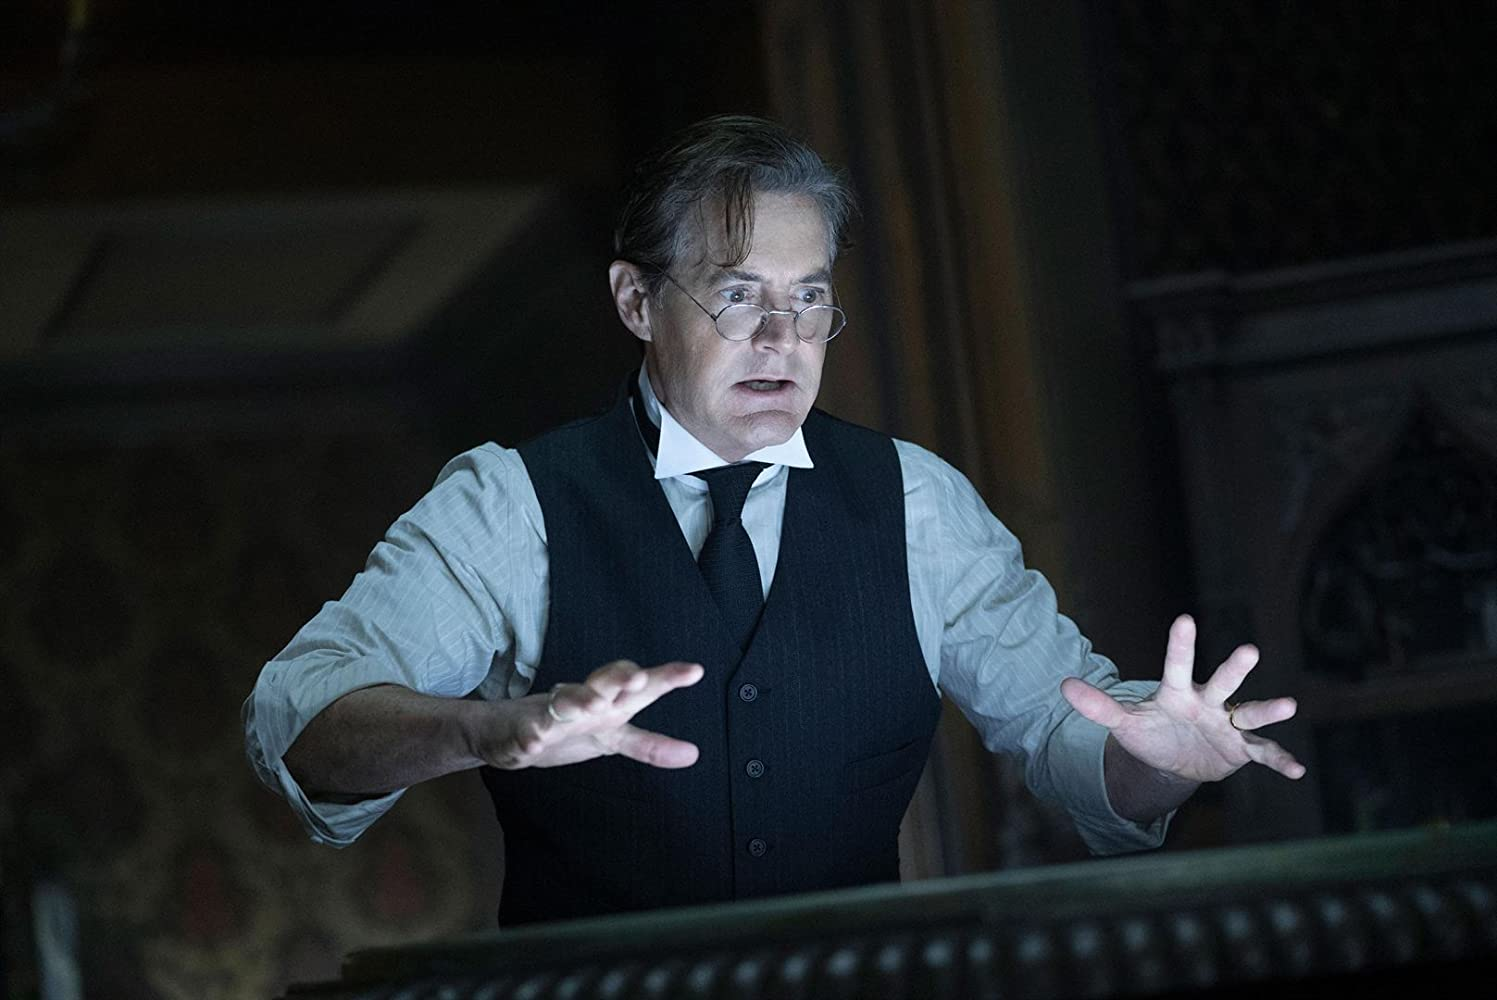 Kyle MacLachlan in The House with a Clock in Its Walls (2018)